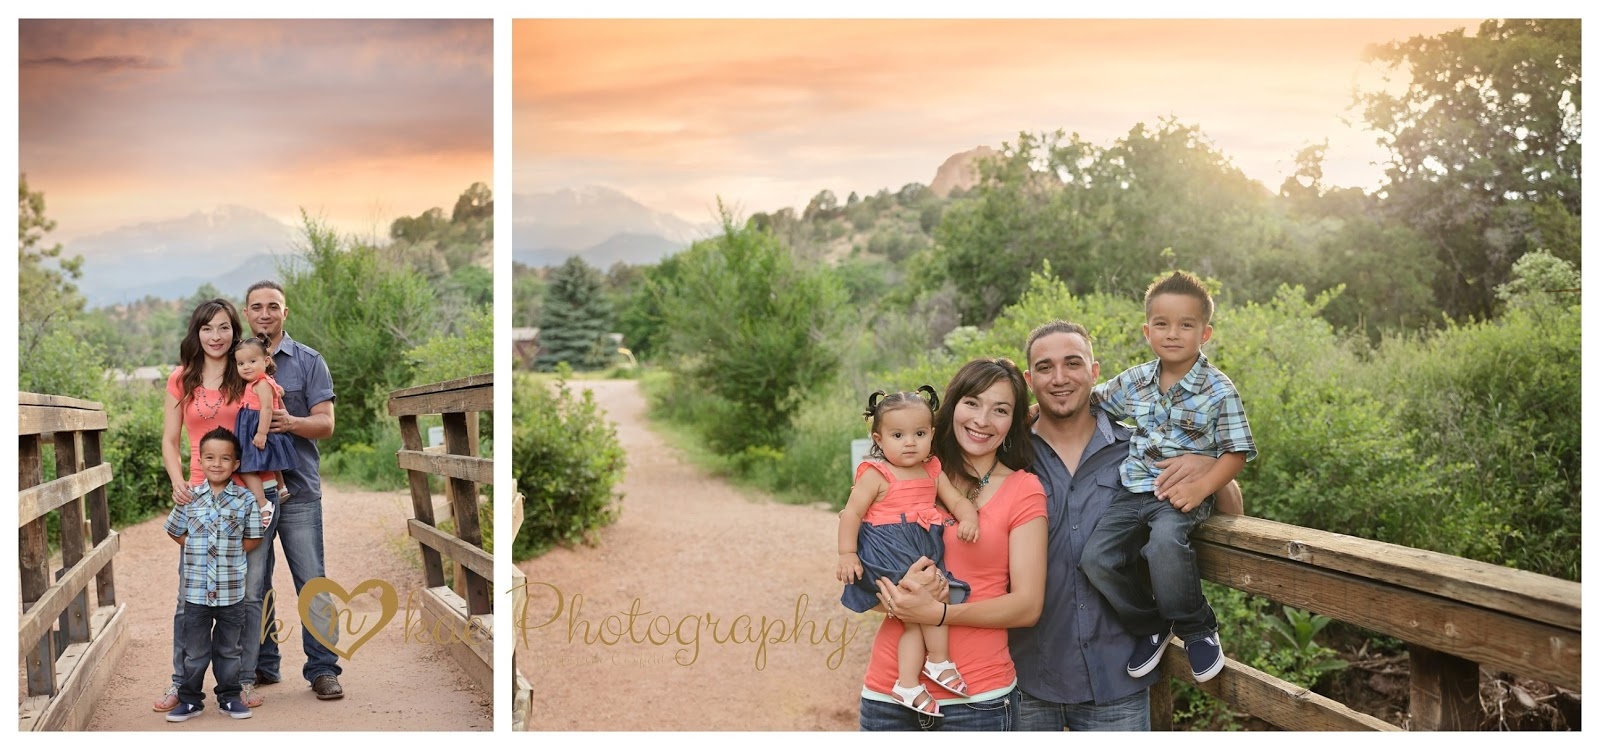 k 'n kae photography, family session, rock ledge ranch, colorado springs, summer 2015, family of 4 photo session